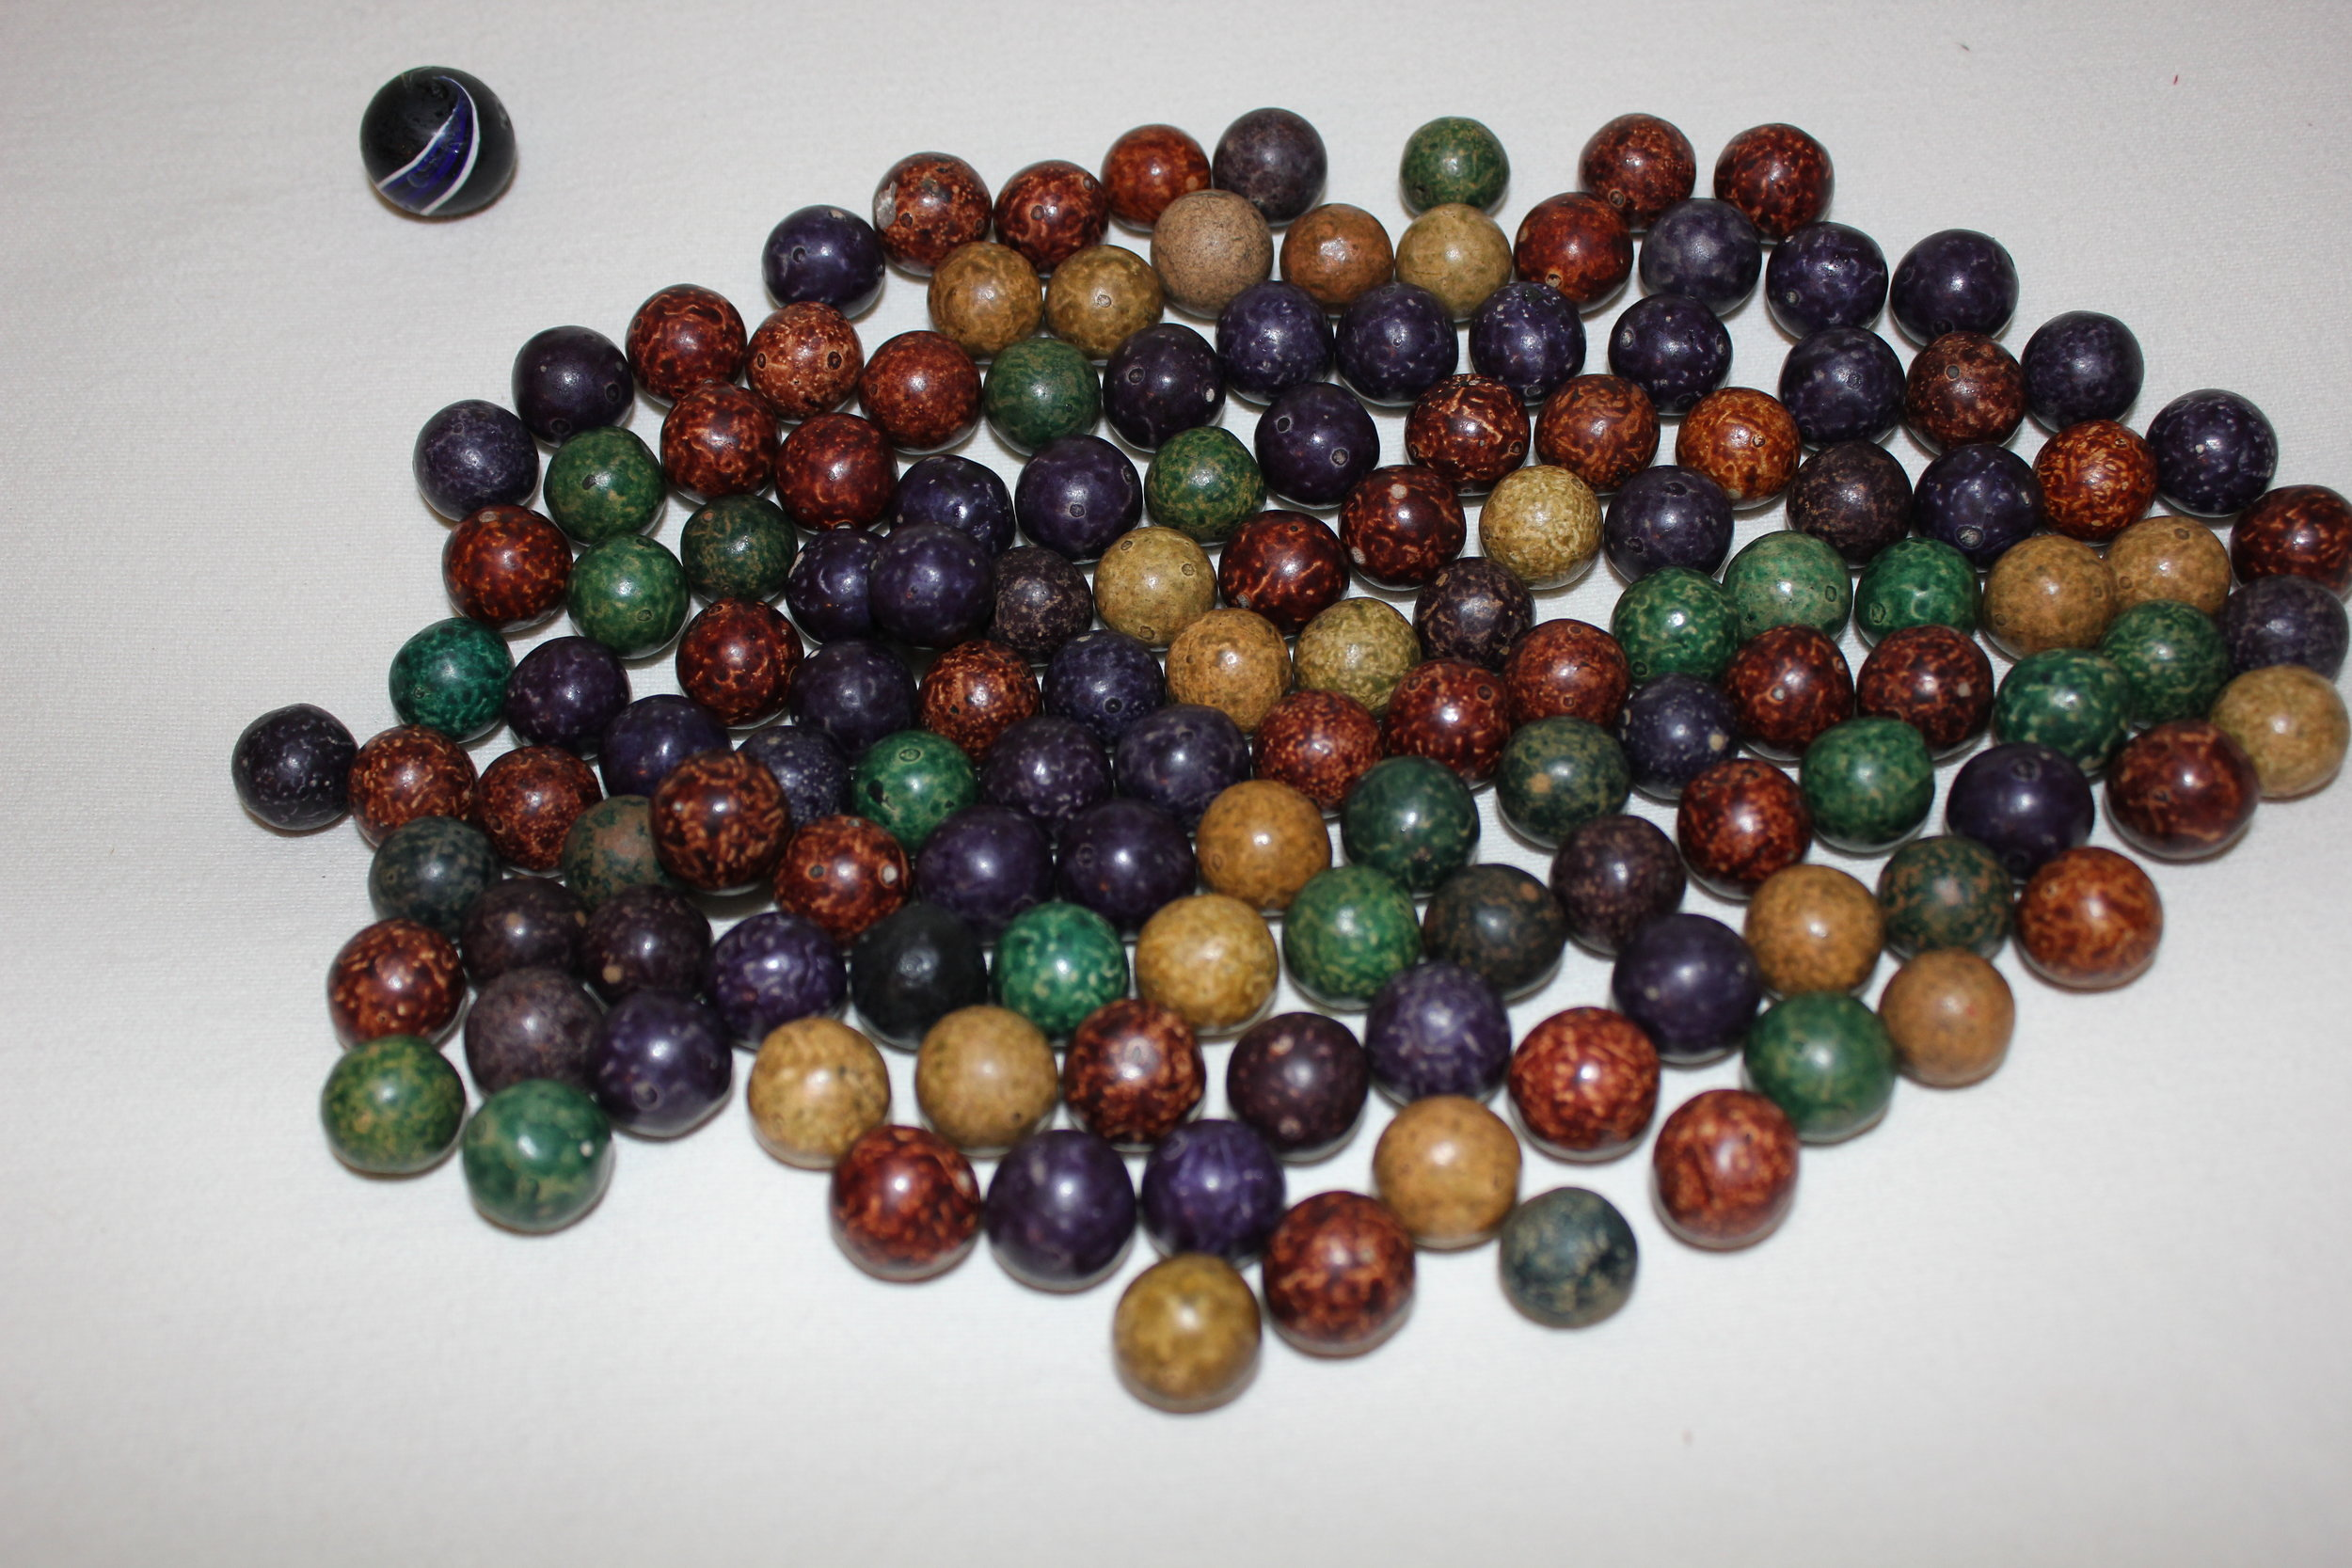 Antique Clay Marbles Antiquities And